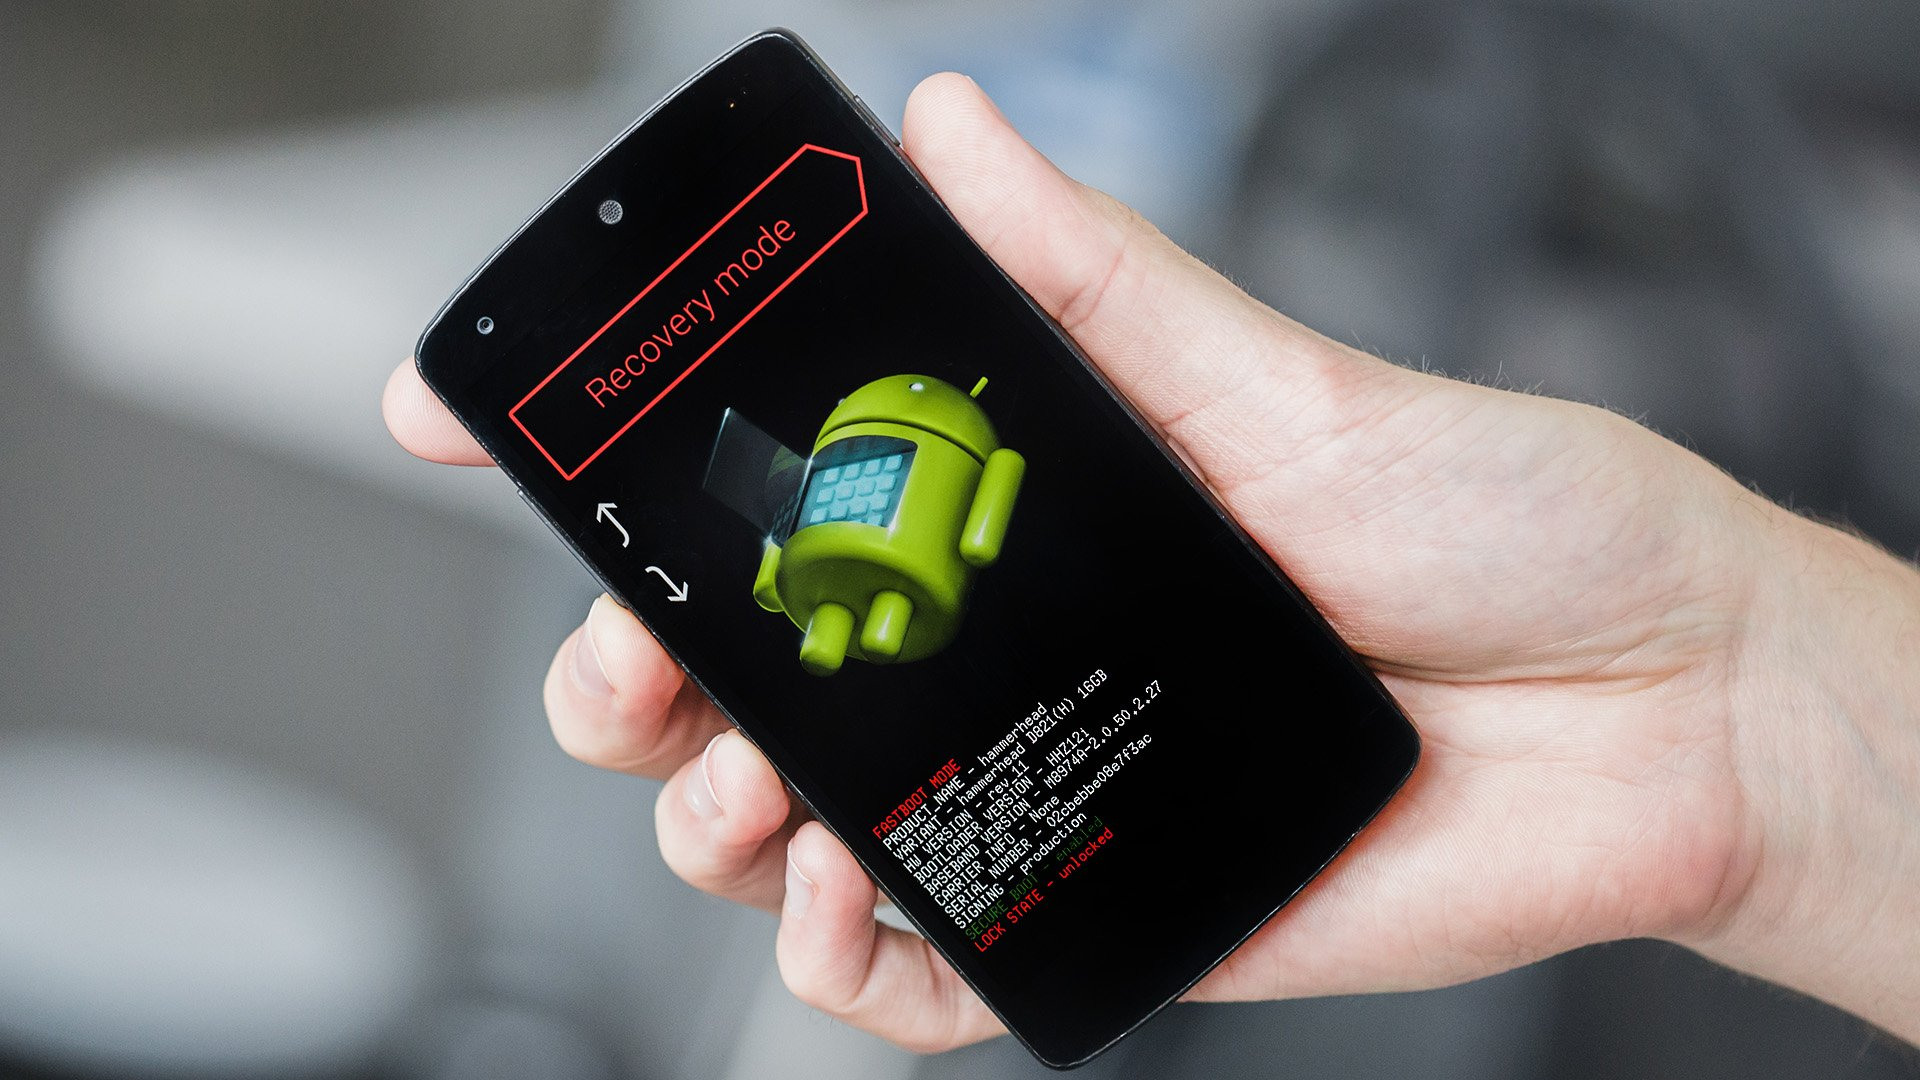 How to unlock Nexus 5 bootloader: the first step for modding.